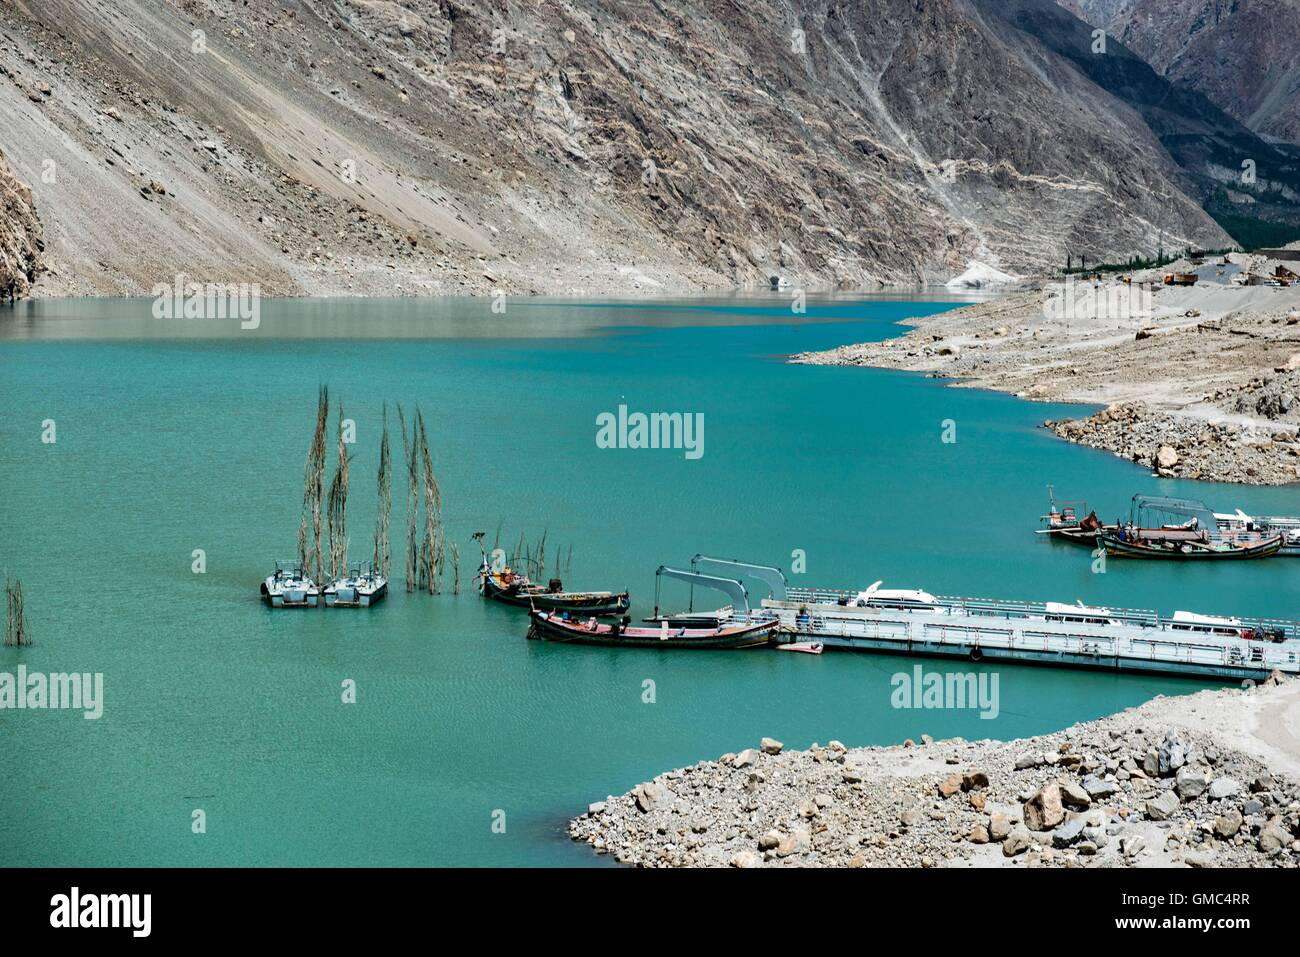 Abandoned ferry boats and pontoons on Attabad lake in the Gojal valley, Hunza, Gilgit-Baltistan, Pakistan - Stock Image